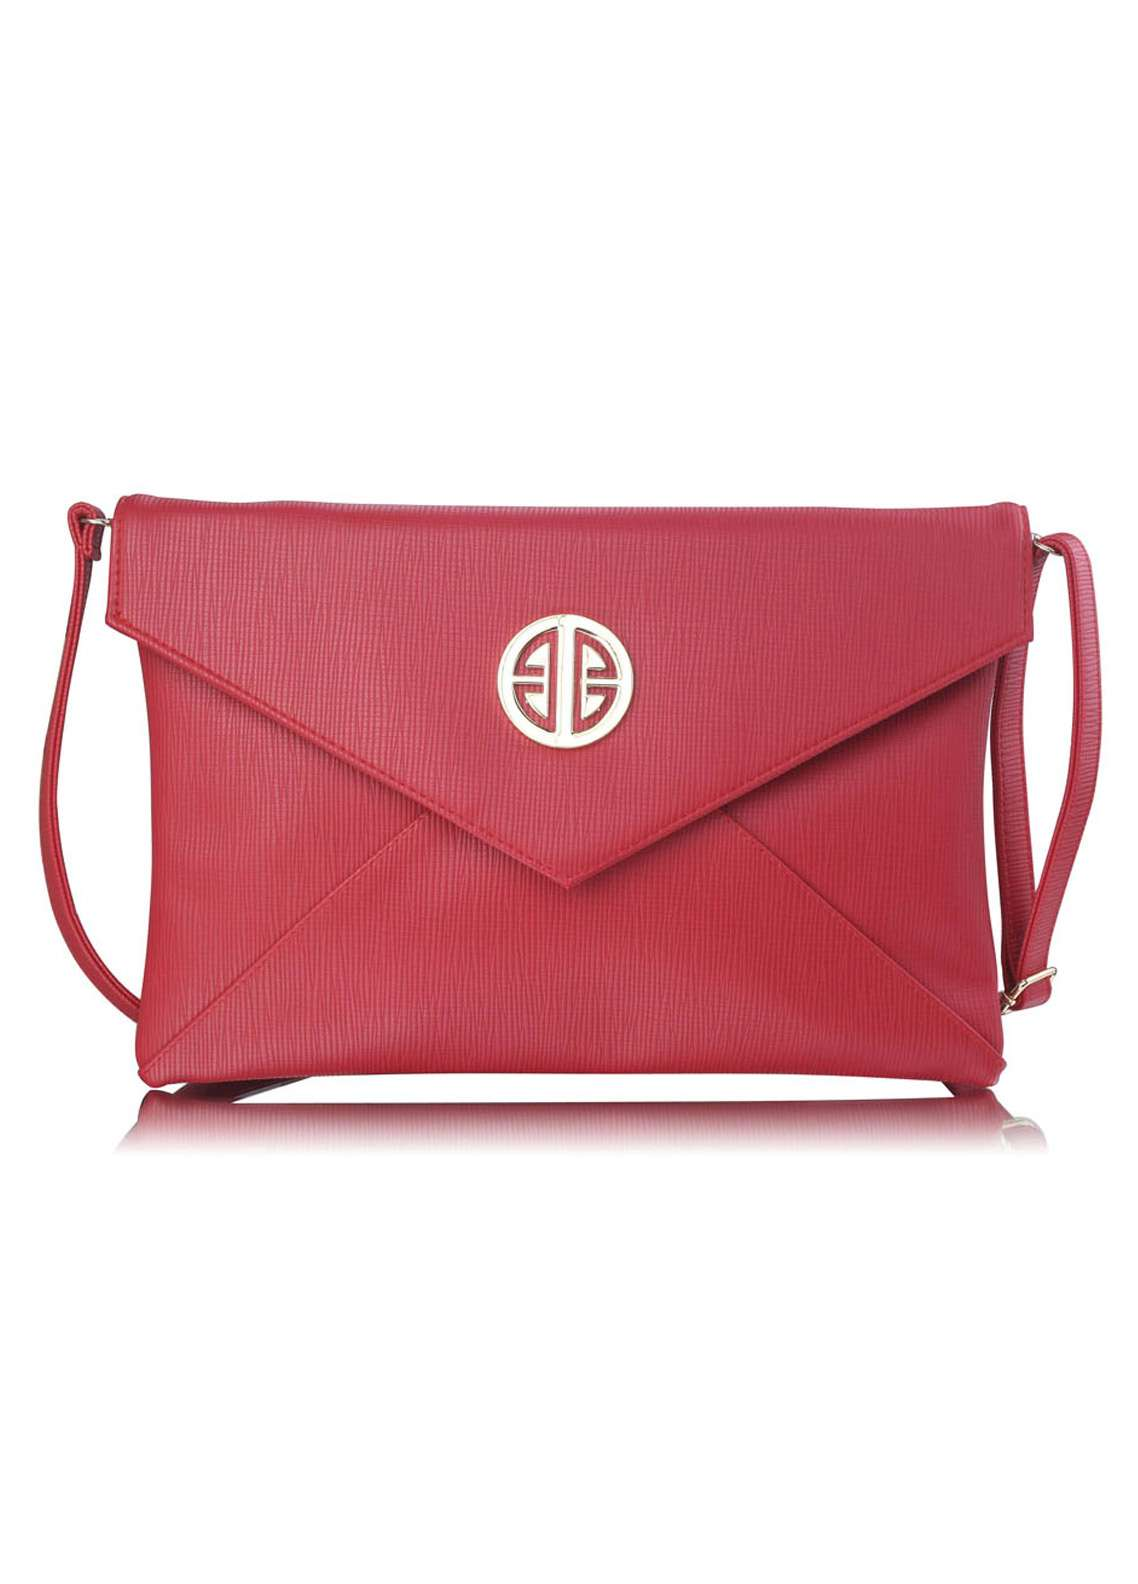 Fashion Only Satin Clutch Bags for Women Red